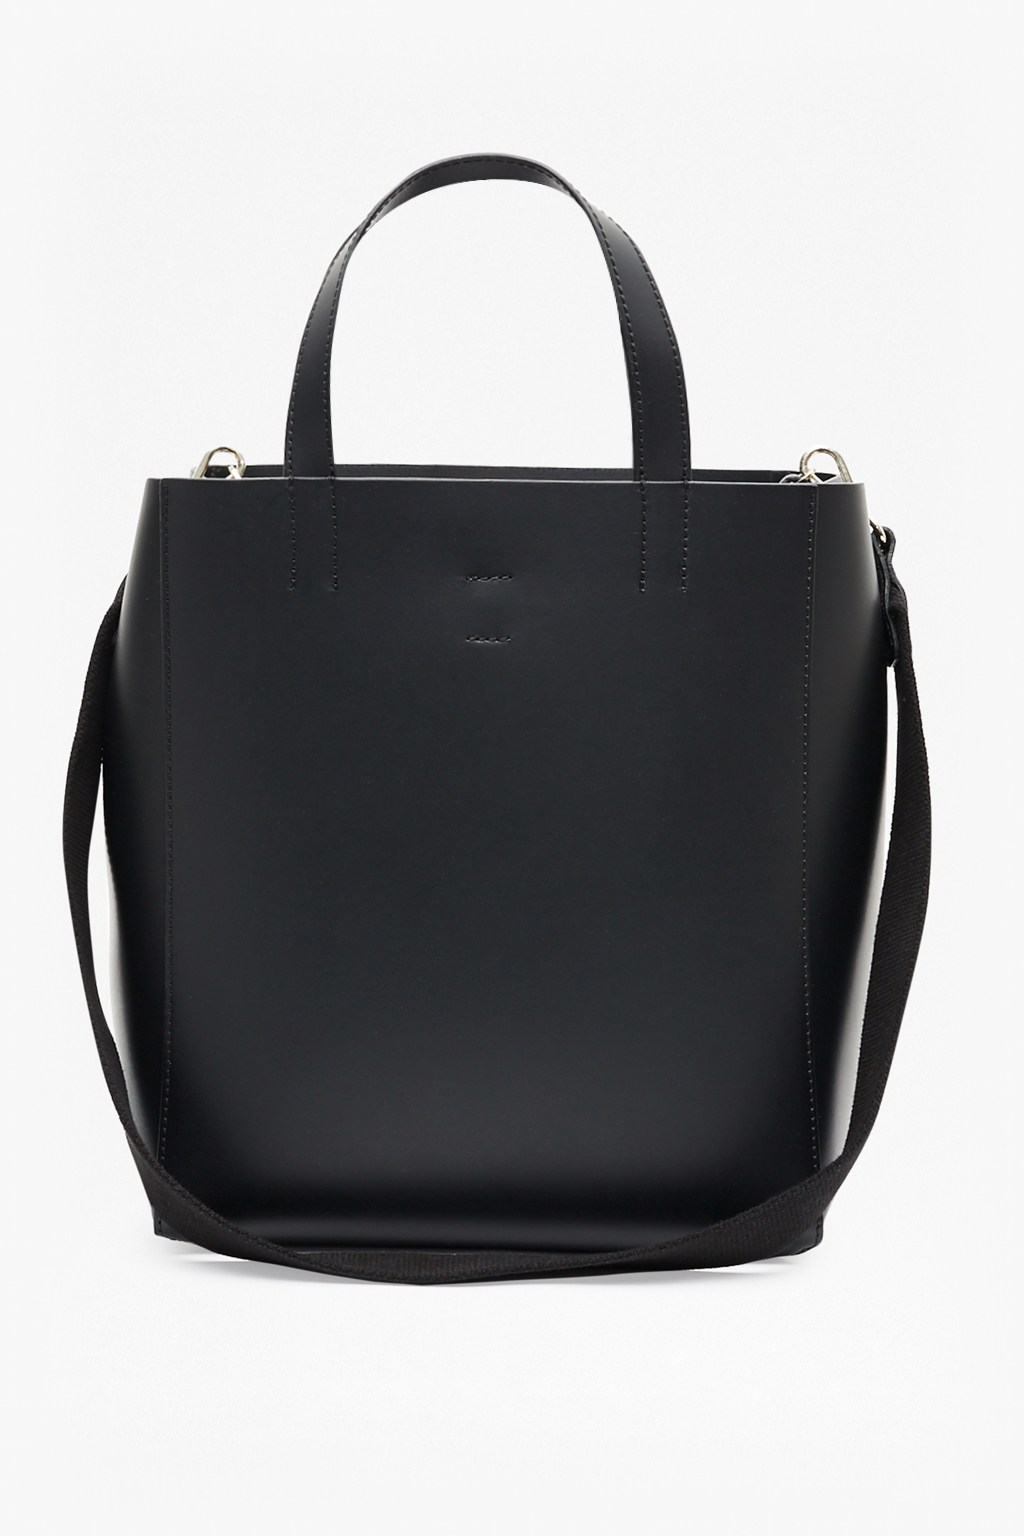 bf15443aaf Vachetta Leather Tote Bag. loading images... loading images.